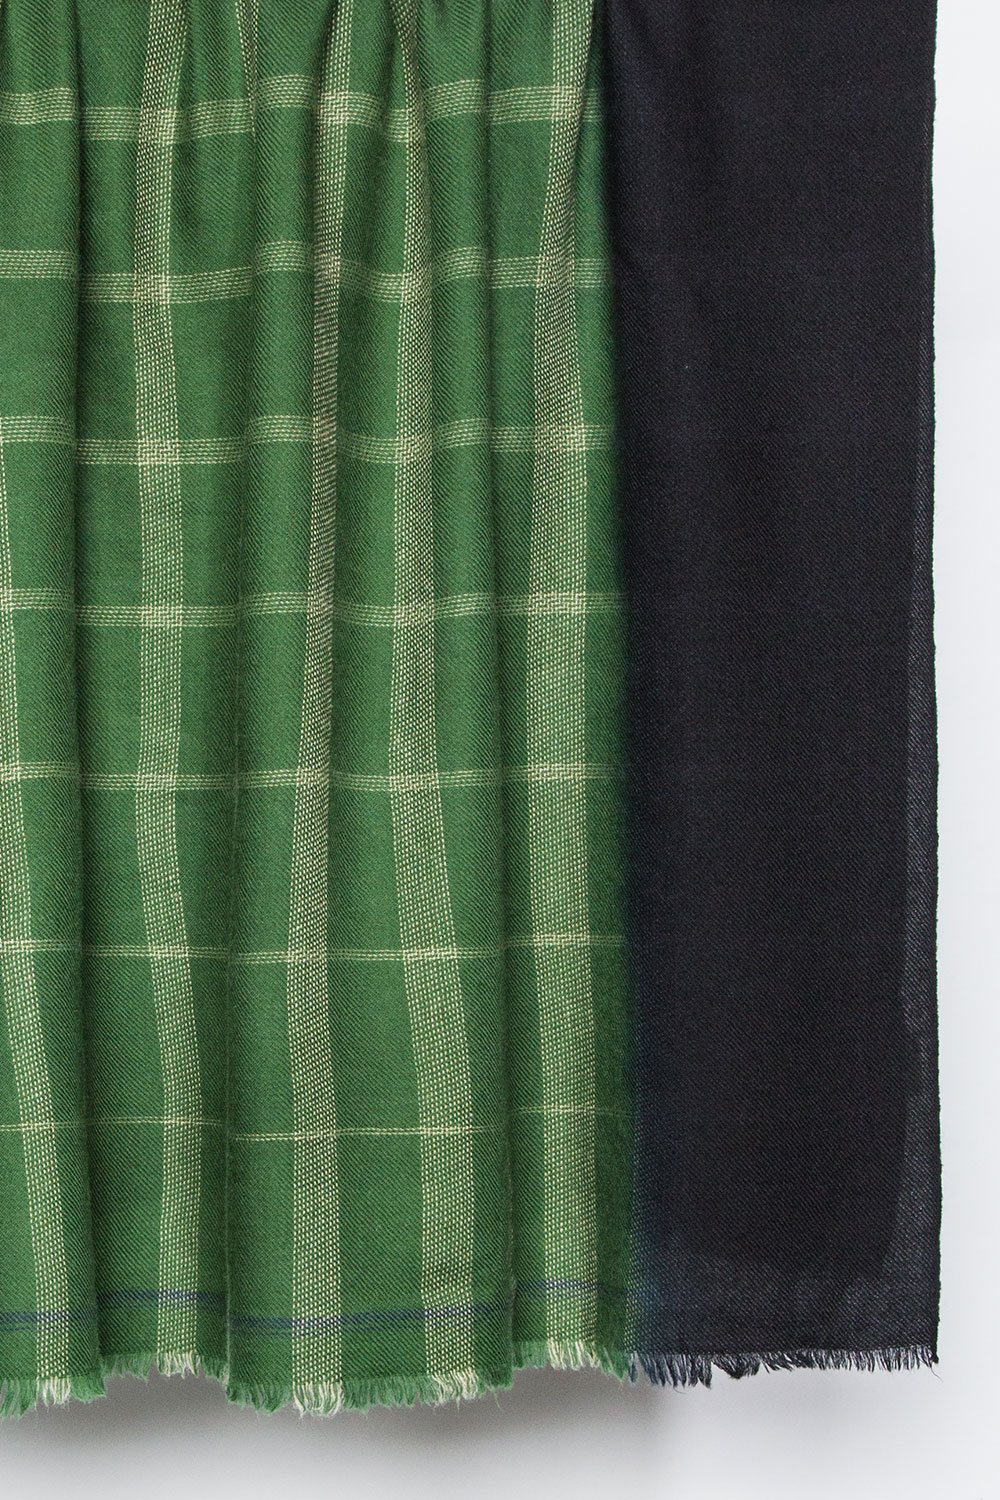 Moismont Square Wool Shawl in Green Grid with Black Dip-Dyed Ends  $120